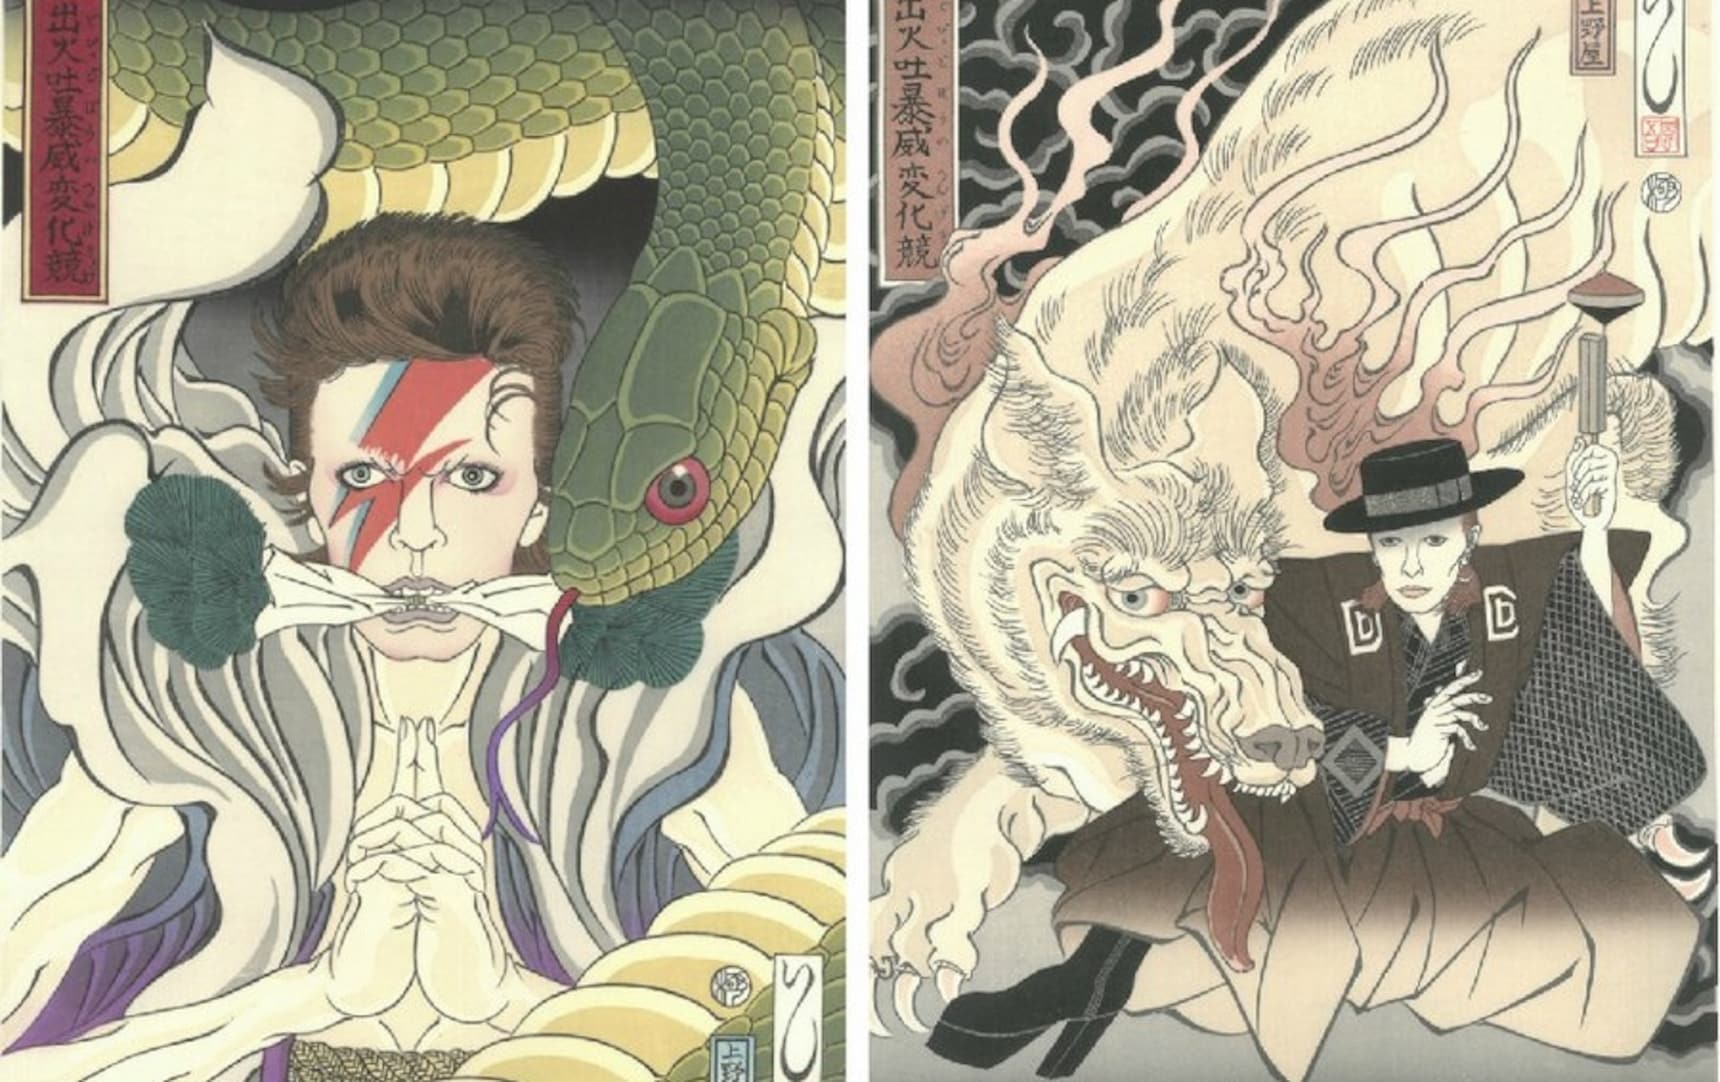 Rock Icon David Bowie Immortalized in Ukiyo-e